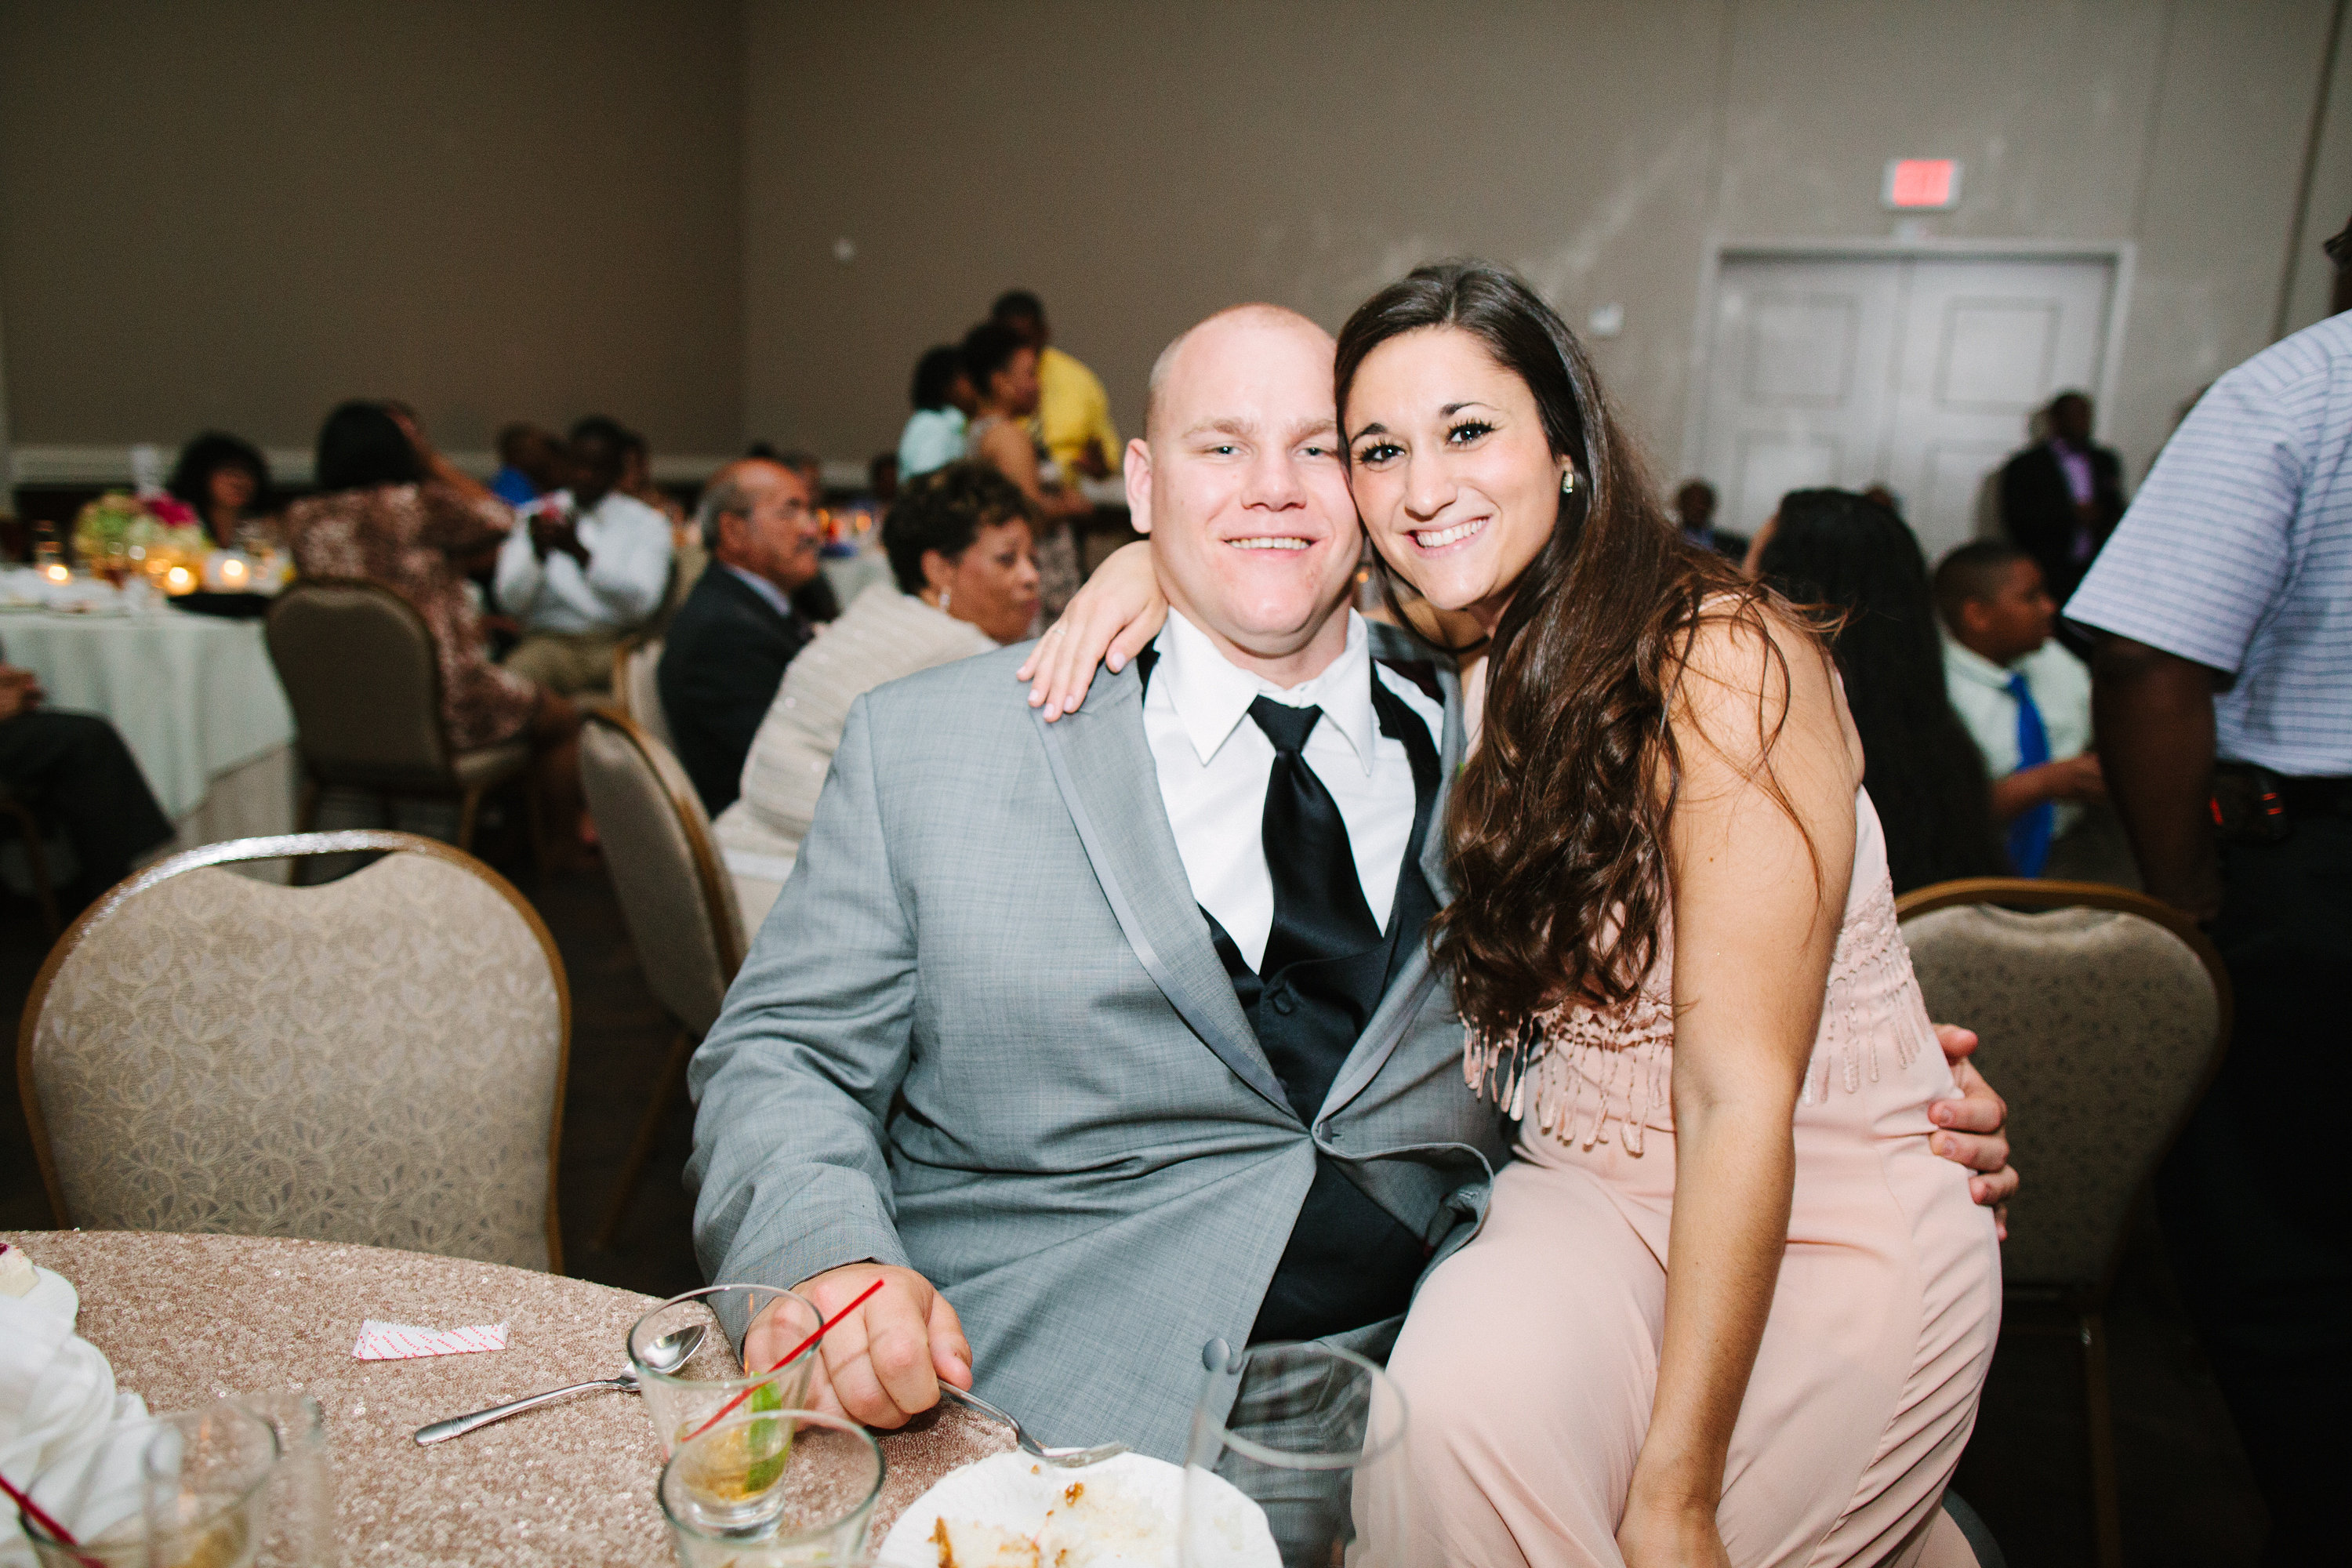 Allen_Reception_ANNAROUTHPHOTOGRAPHY_0339